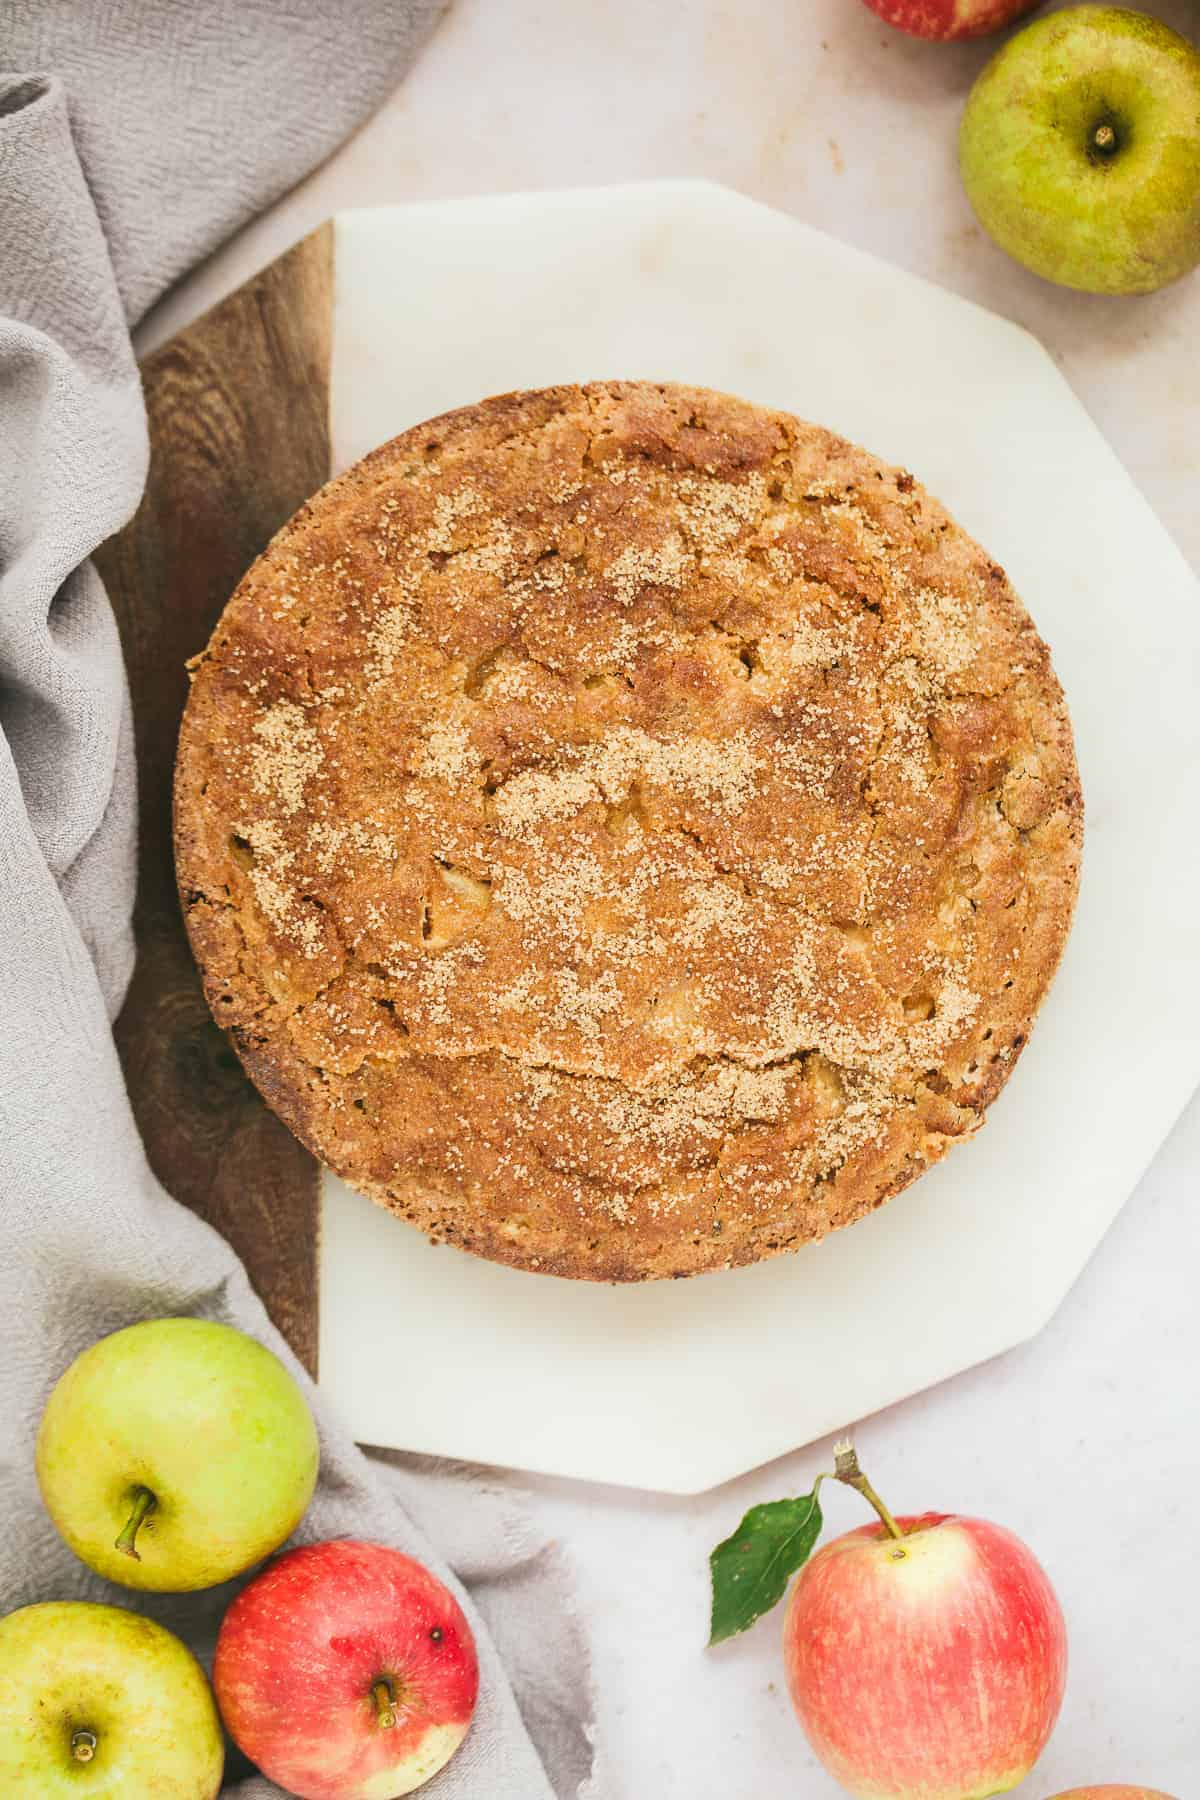 A rustic looking cake with a crunchy sugar topping. The cake is on a chopping board and there are fresh apples surrounding it.